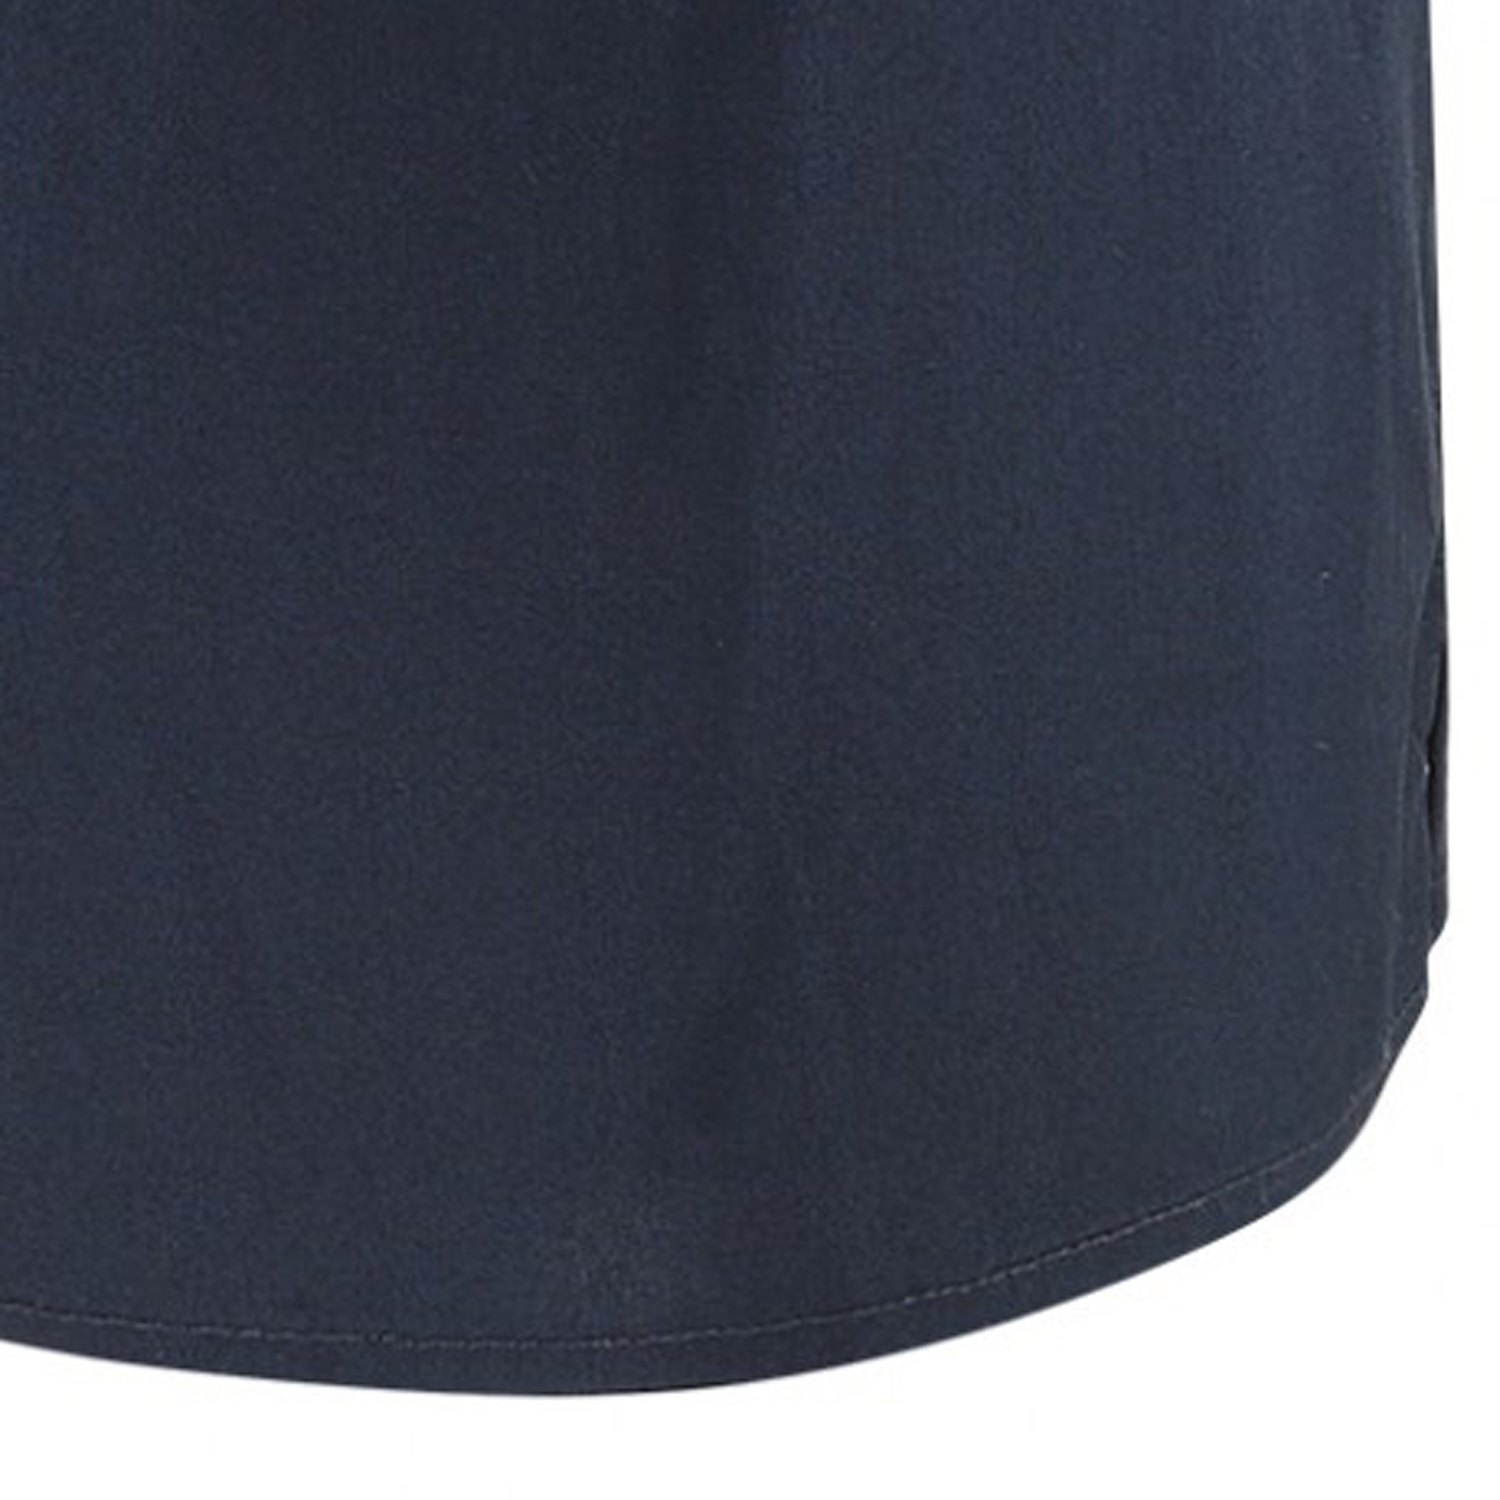 Detail Image to Dark blue pants from Jockey in outsizes until 6XL